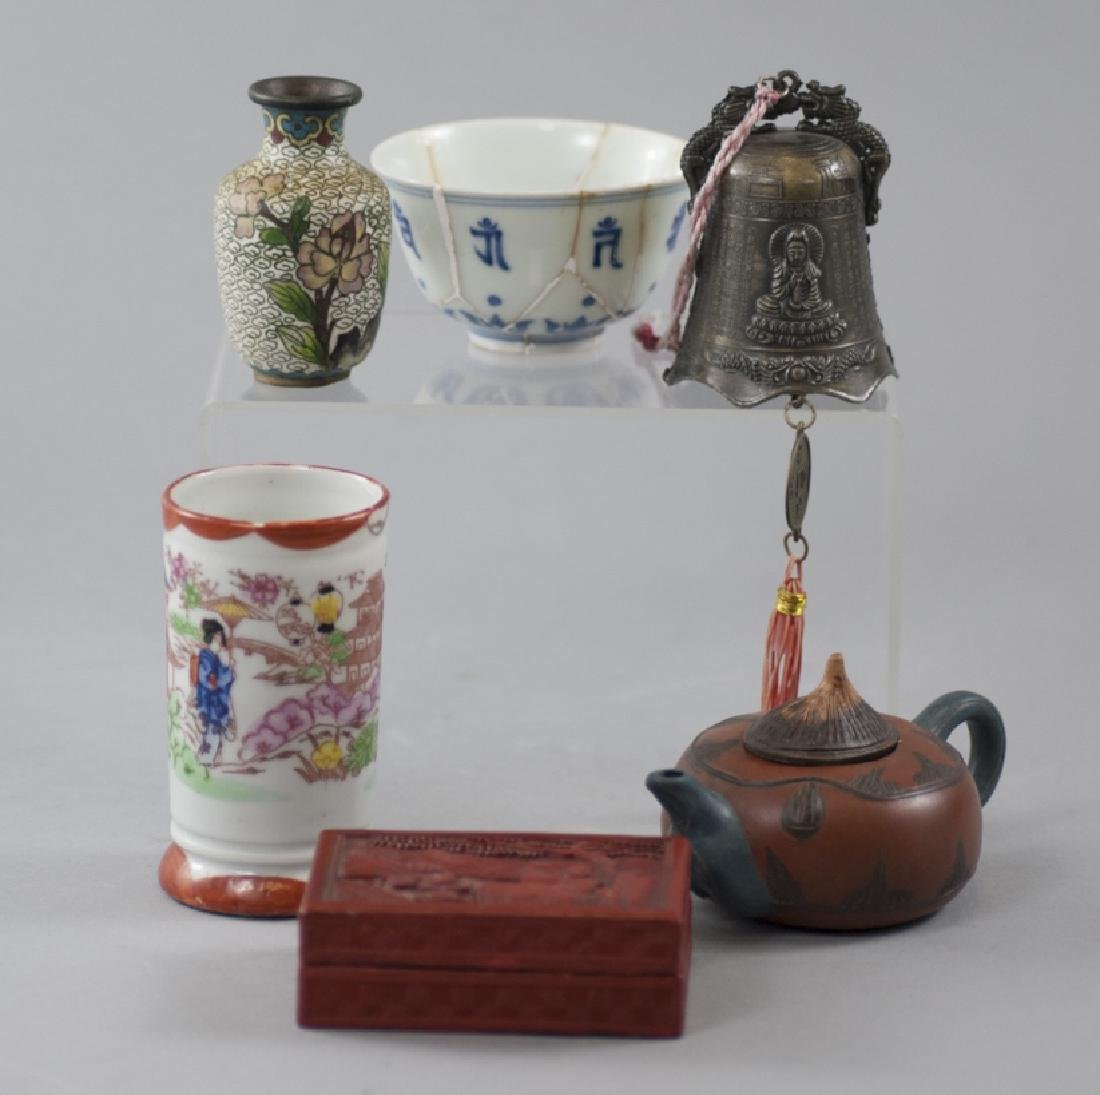 Antique & Vintage Chinese & Japanese Articles